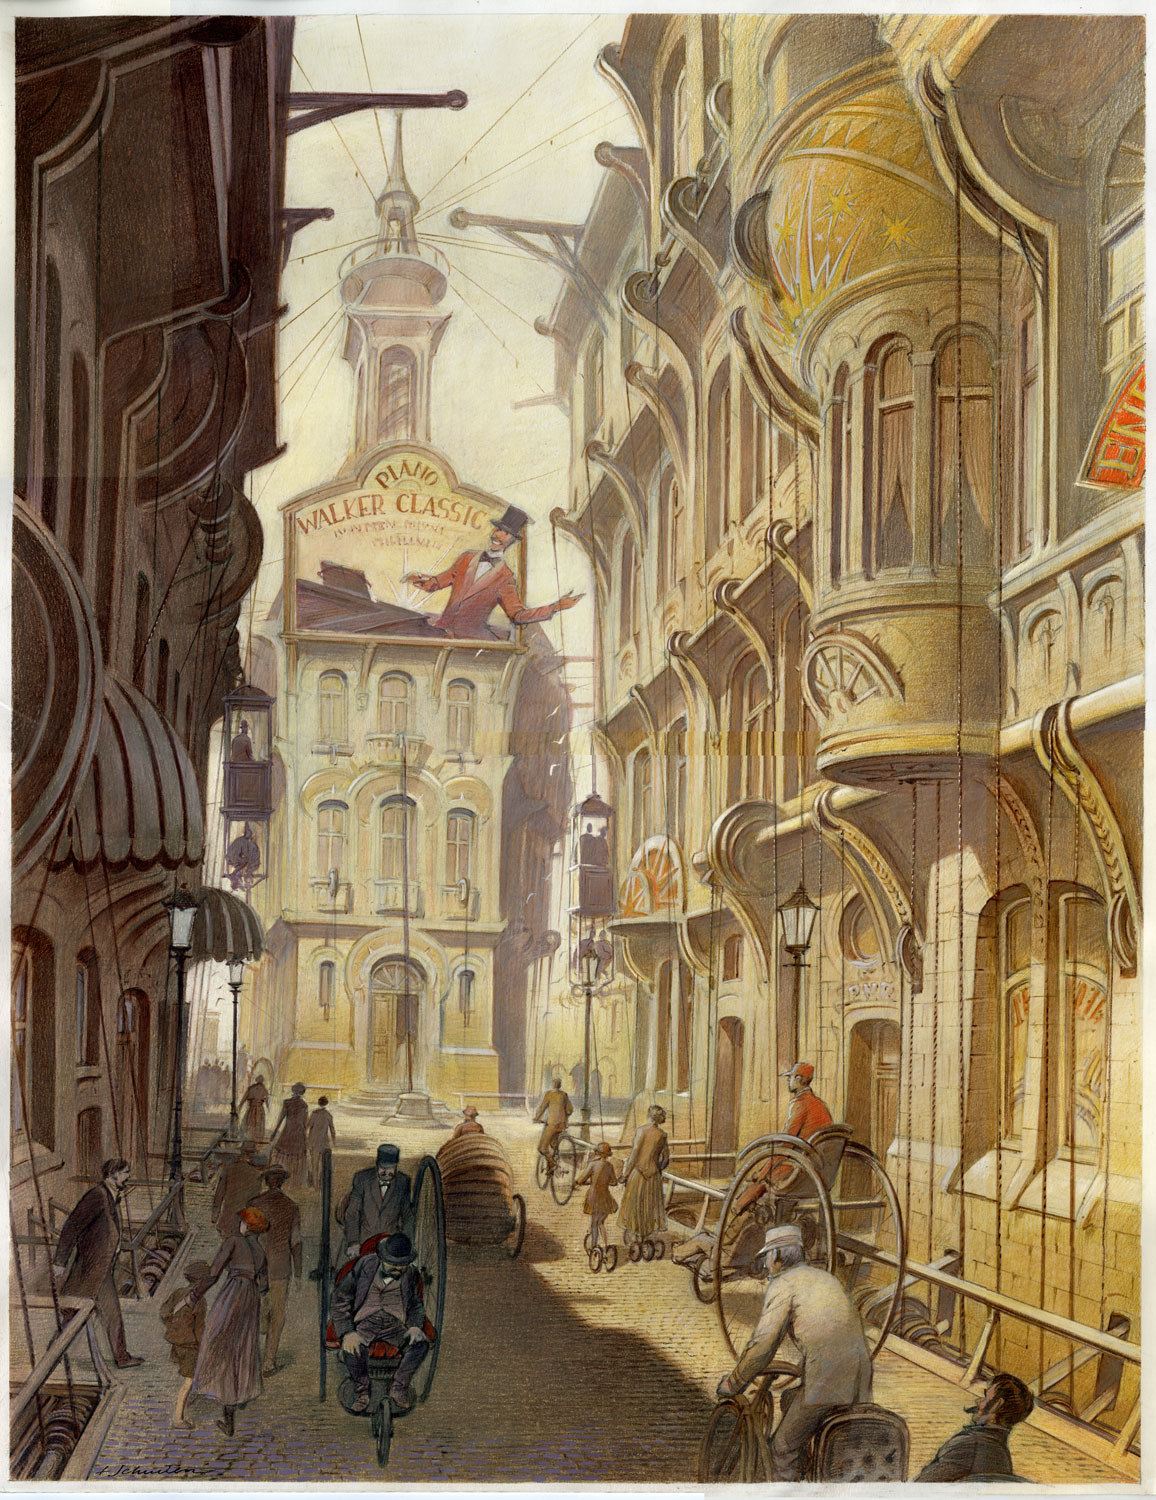 Walker classic francois schuiten benoit peeters for Art et decoration pdf